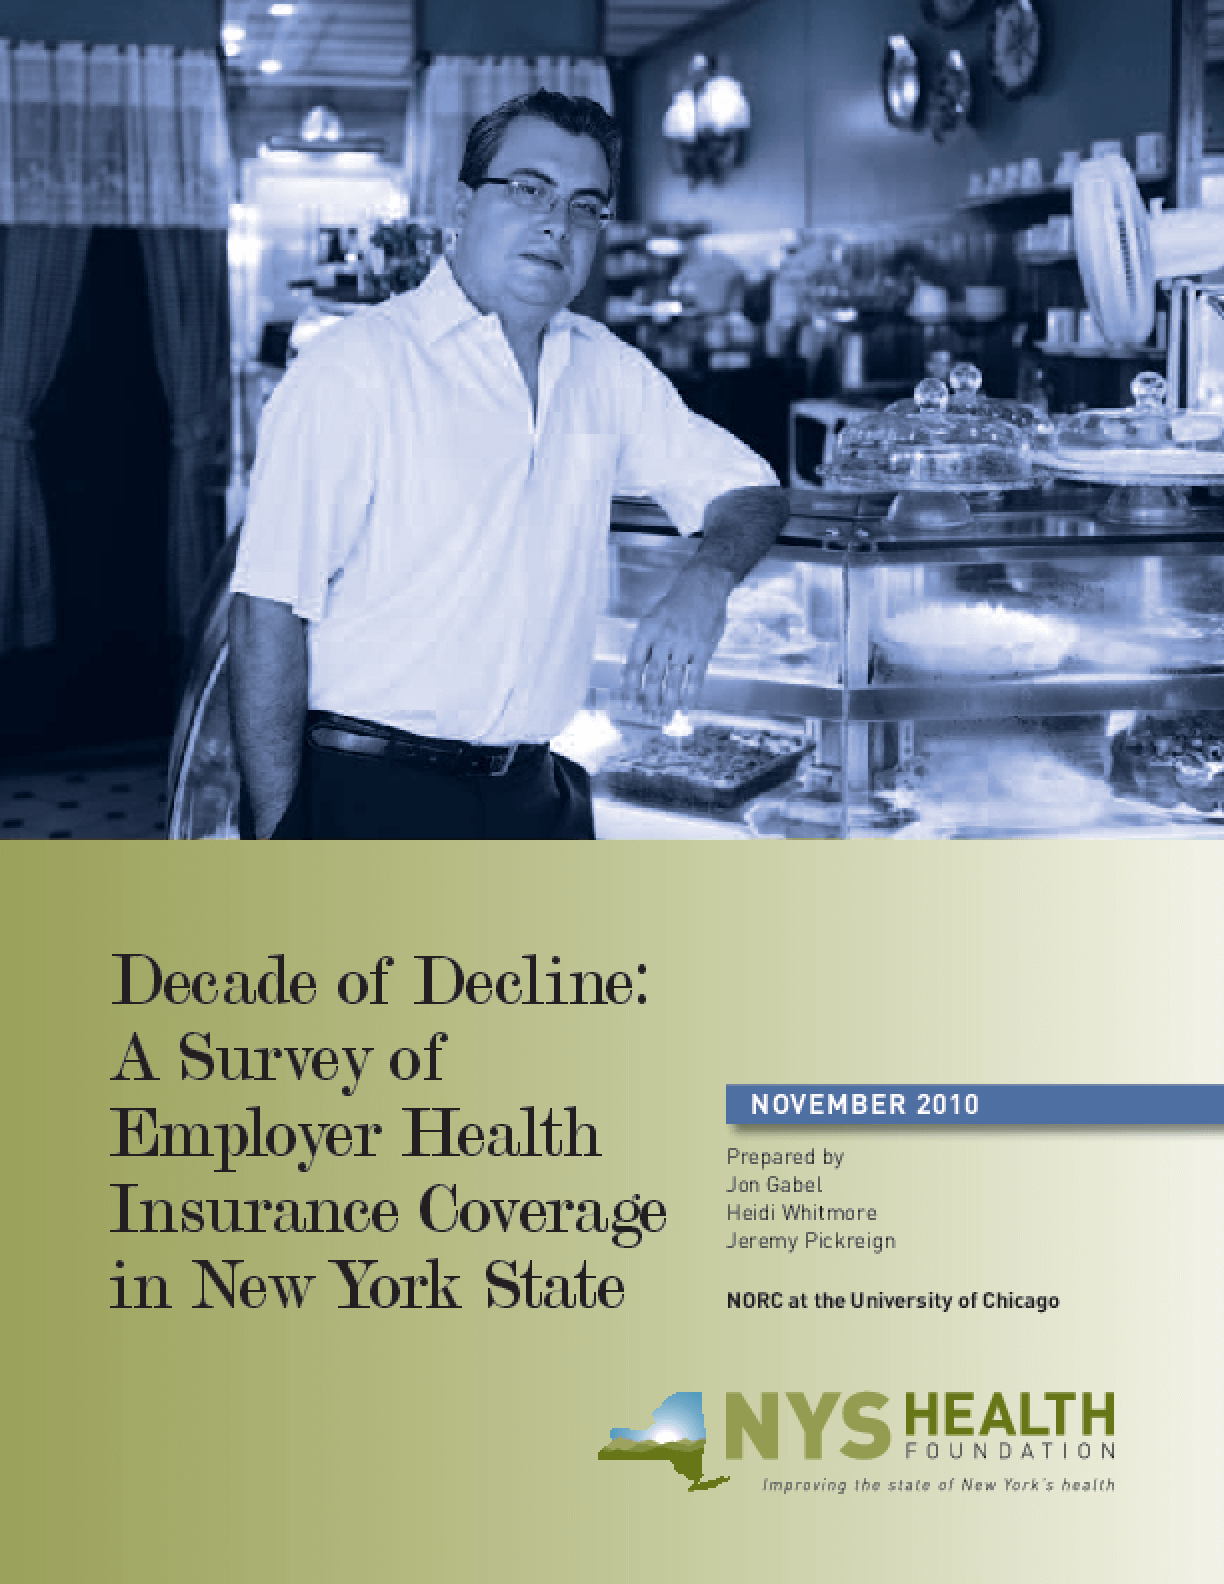 Decade of Decline: A Survey of Employer Health Insurance Coverage in New York State